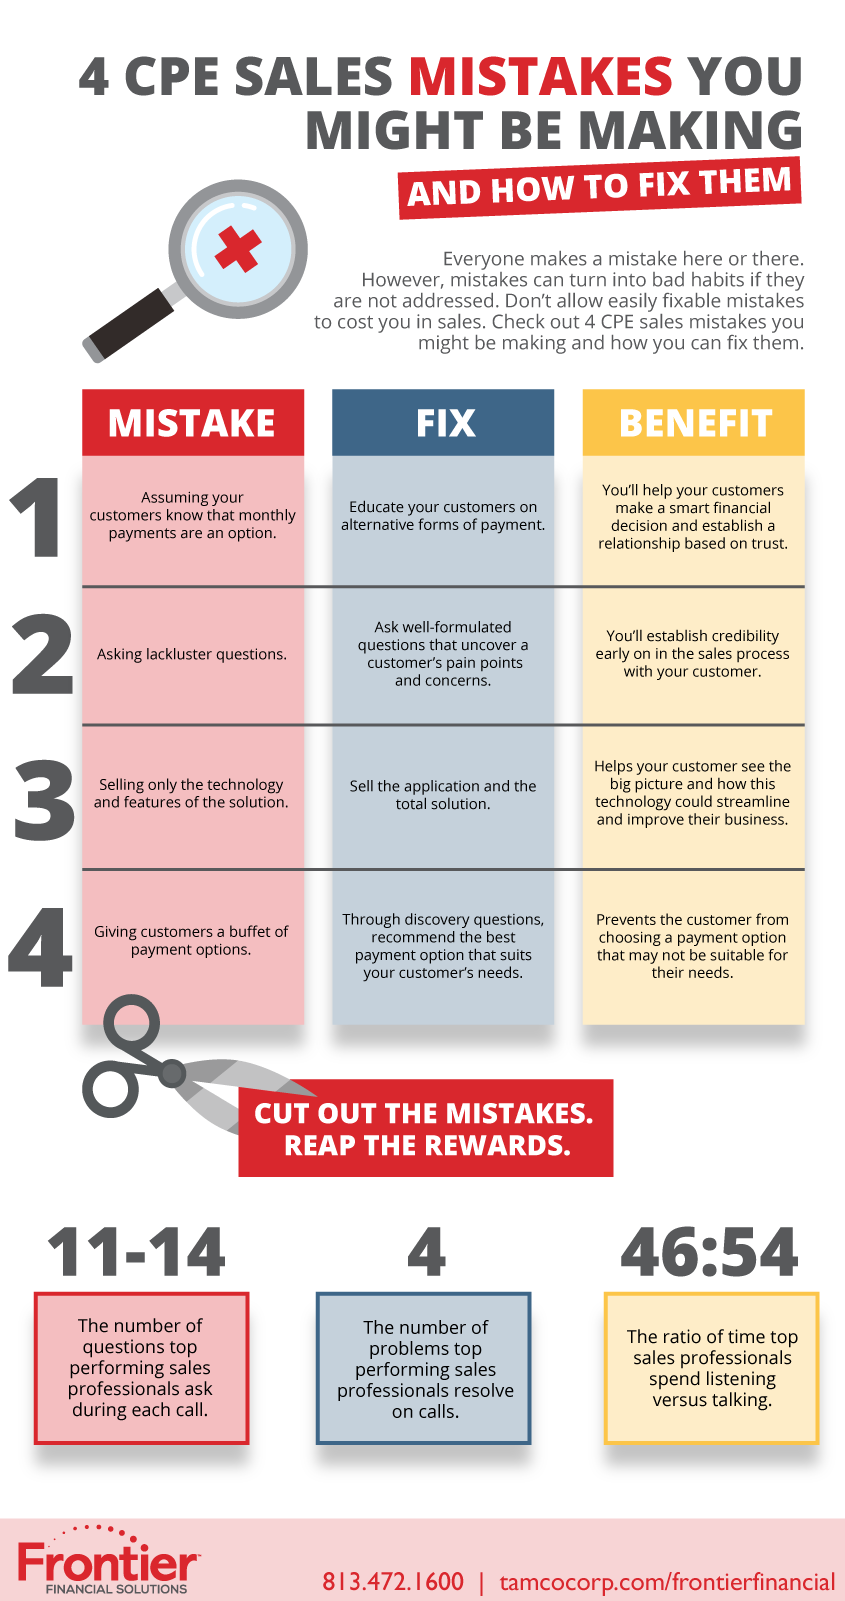 FFS-CPE-Sales-Mistakes-Infographic.png